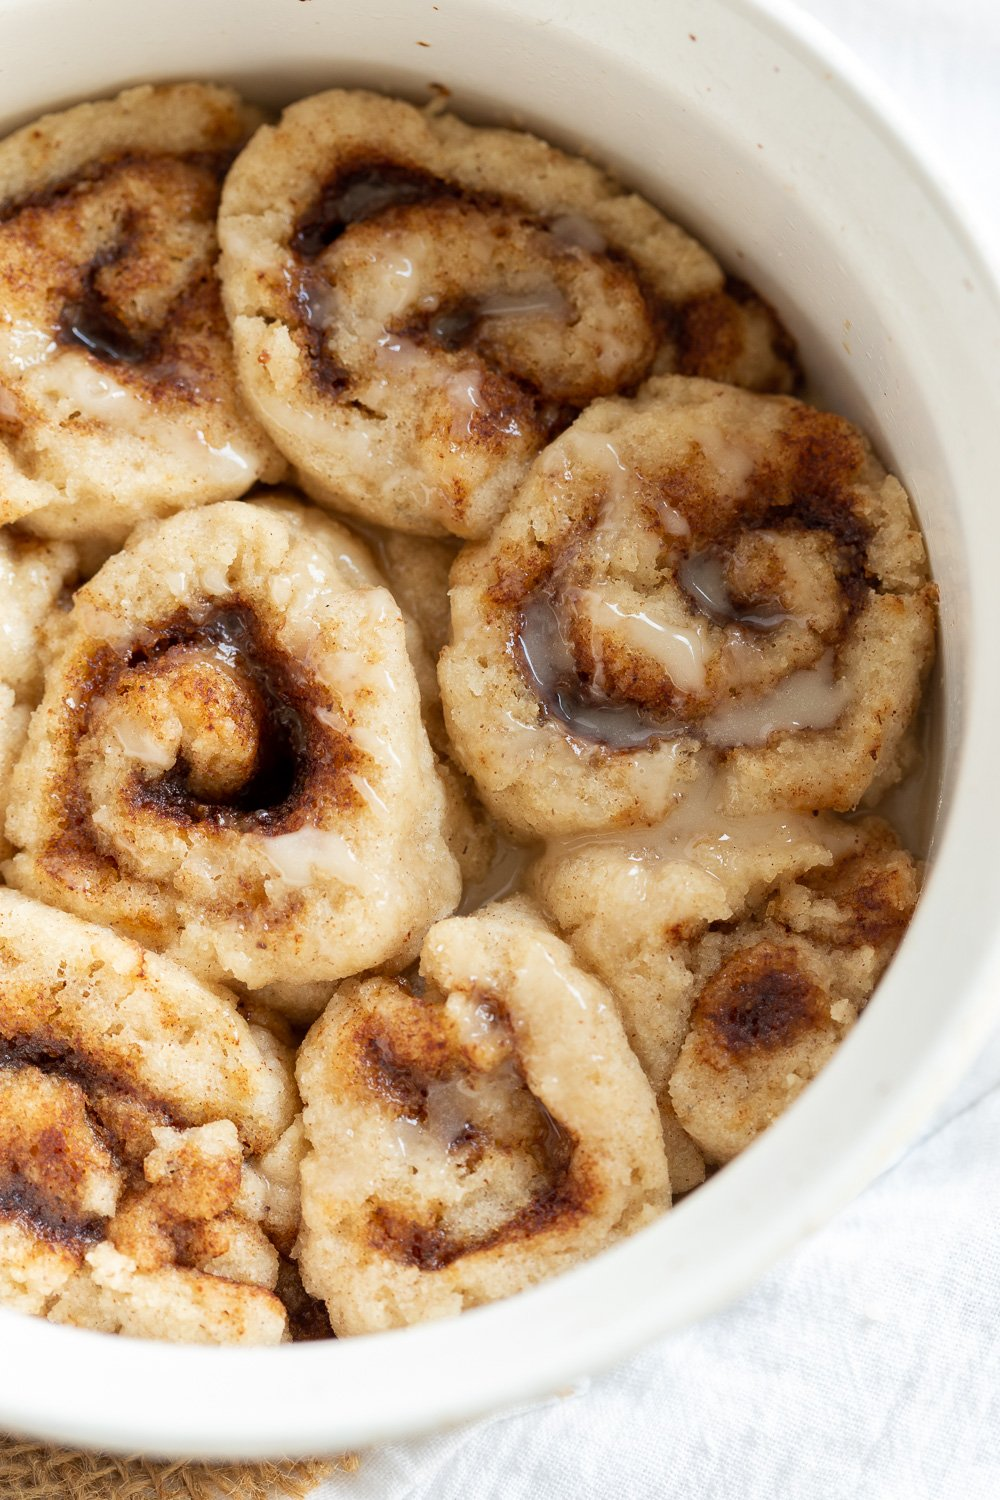 Our Vegan Gluten free Cinnamon rolls in a stoneware dish on marble